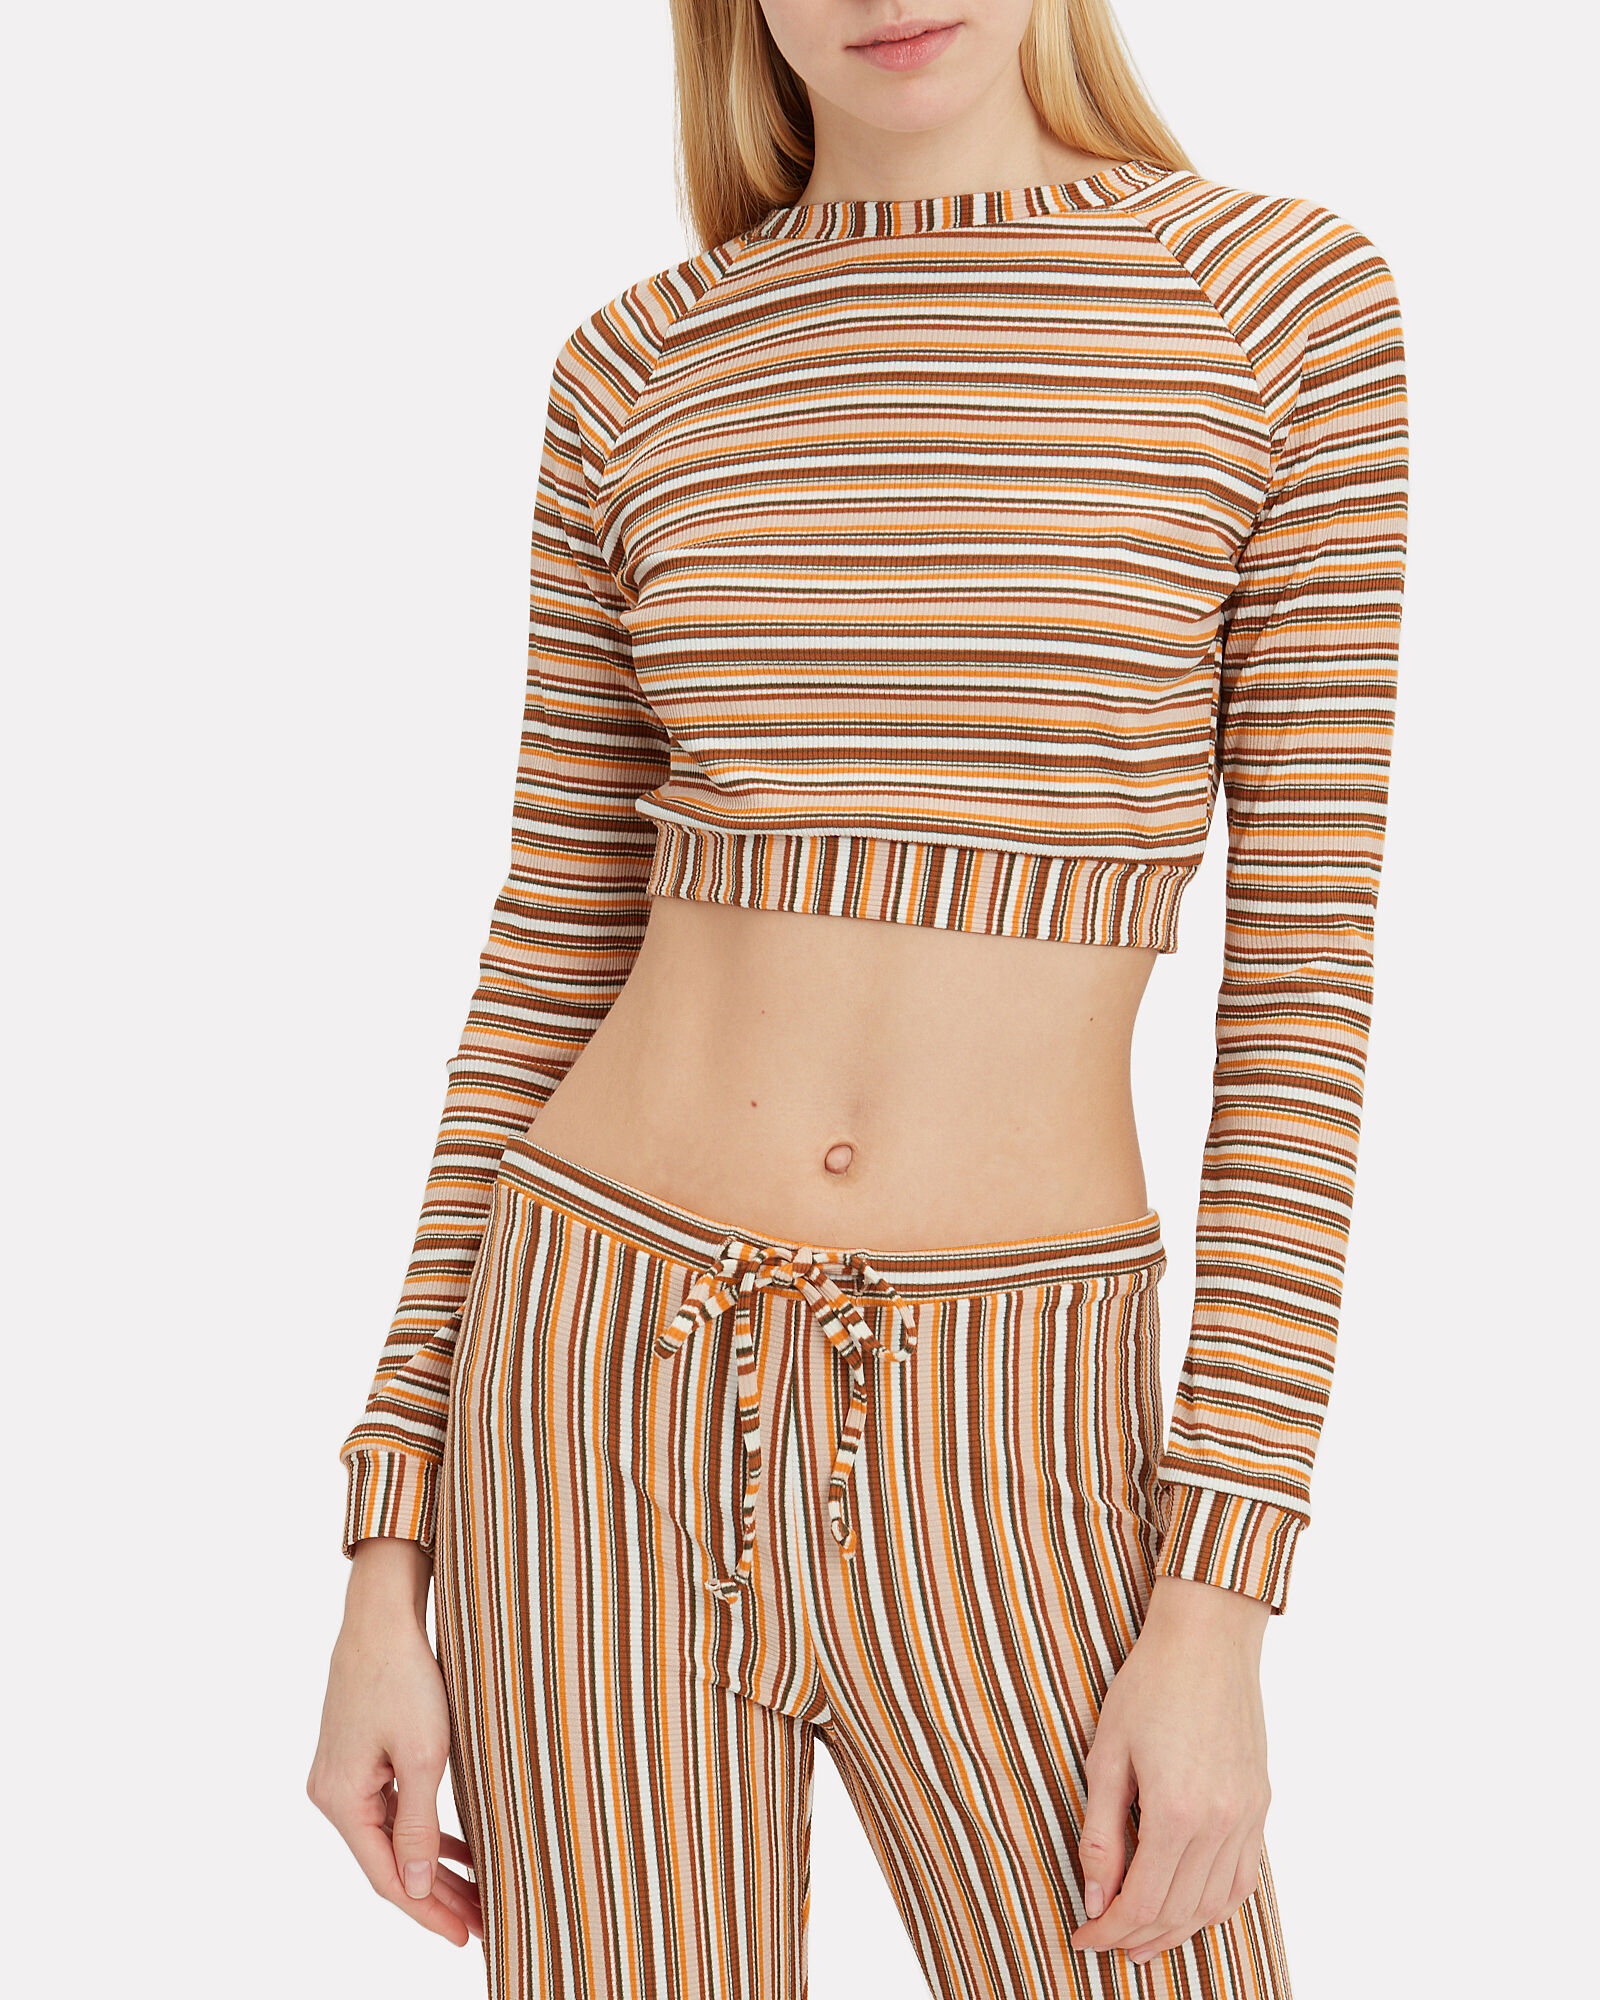 Sunny Striped Knit Sweater, MULTI, hi-res